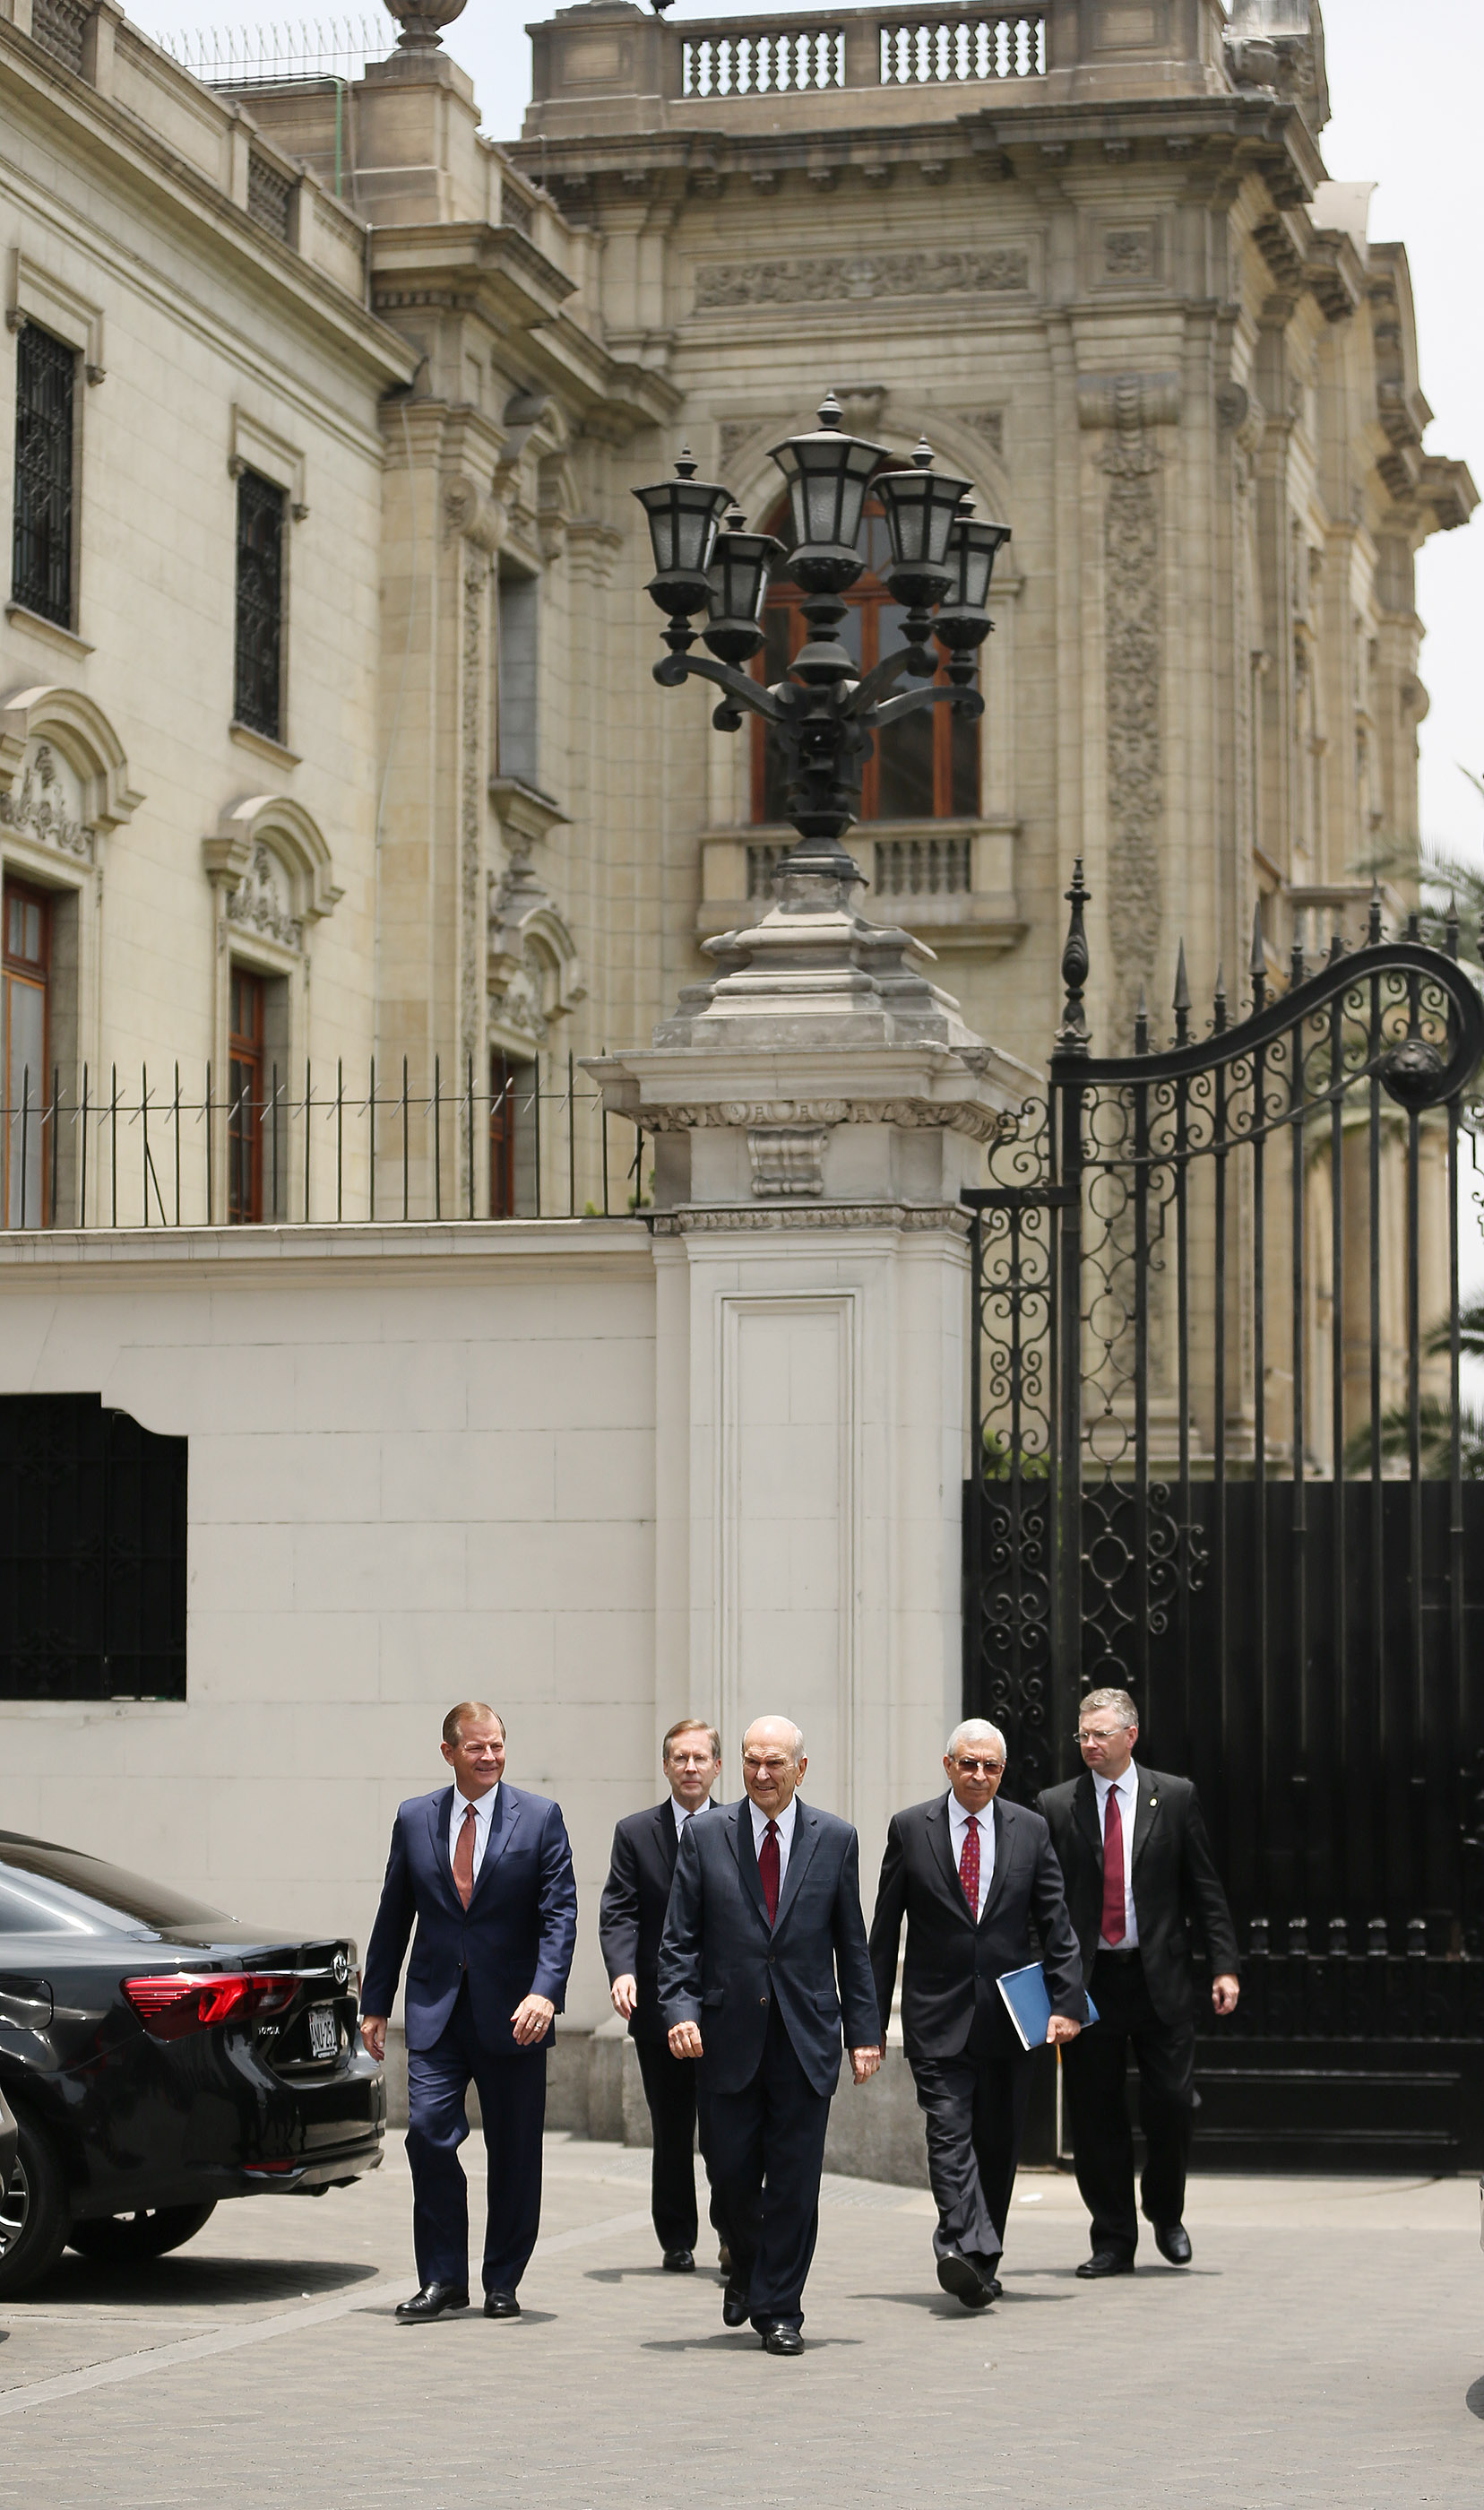 President Russell M. Nelson of The Church of Jesus Christ of Latter-day Saints, center, Elder Gary E. Stevenson, of the Quorum of the Twelve Apostles, and Elder Enrique Falabella, General Authority Seventy, leave the Government Palace after speaking with the president of Peru in Lima on Oct. 20, 2018.